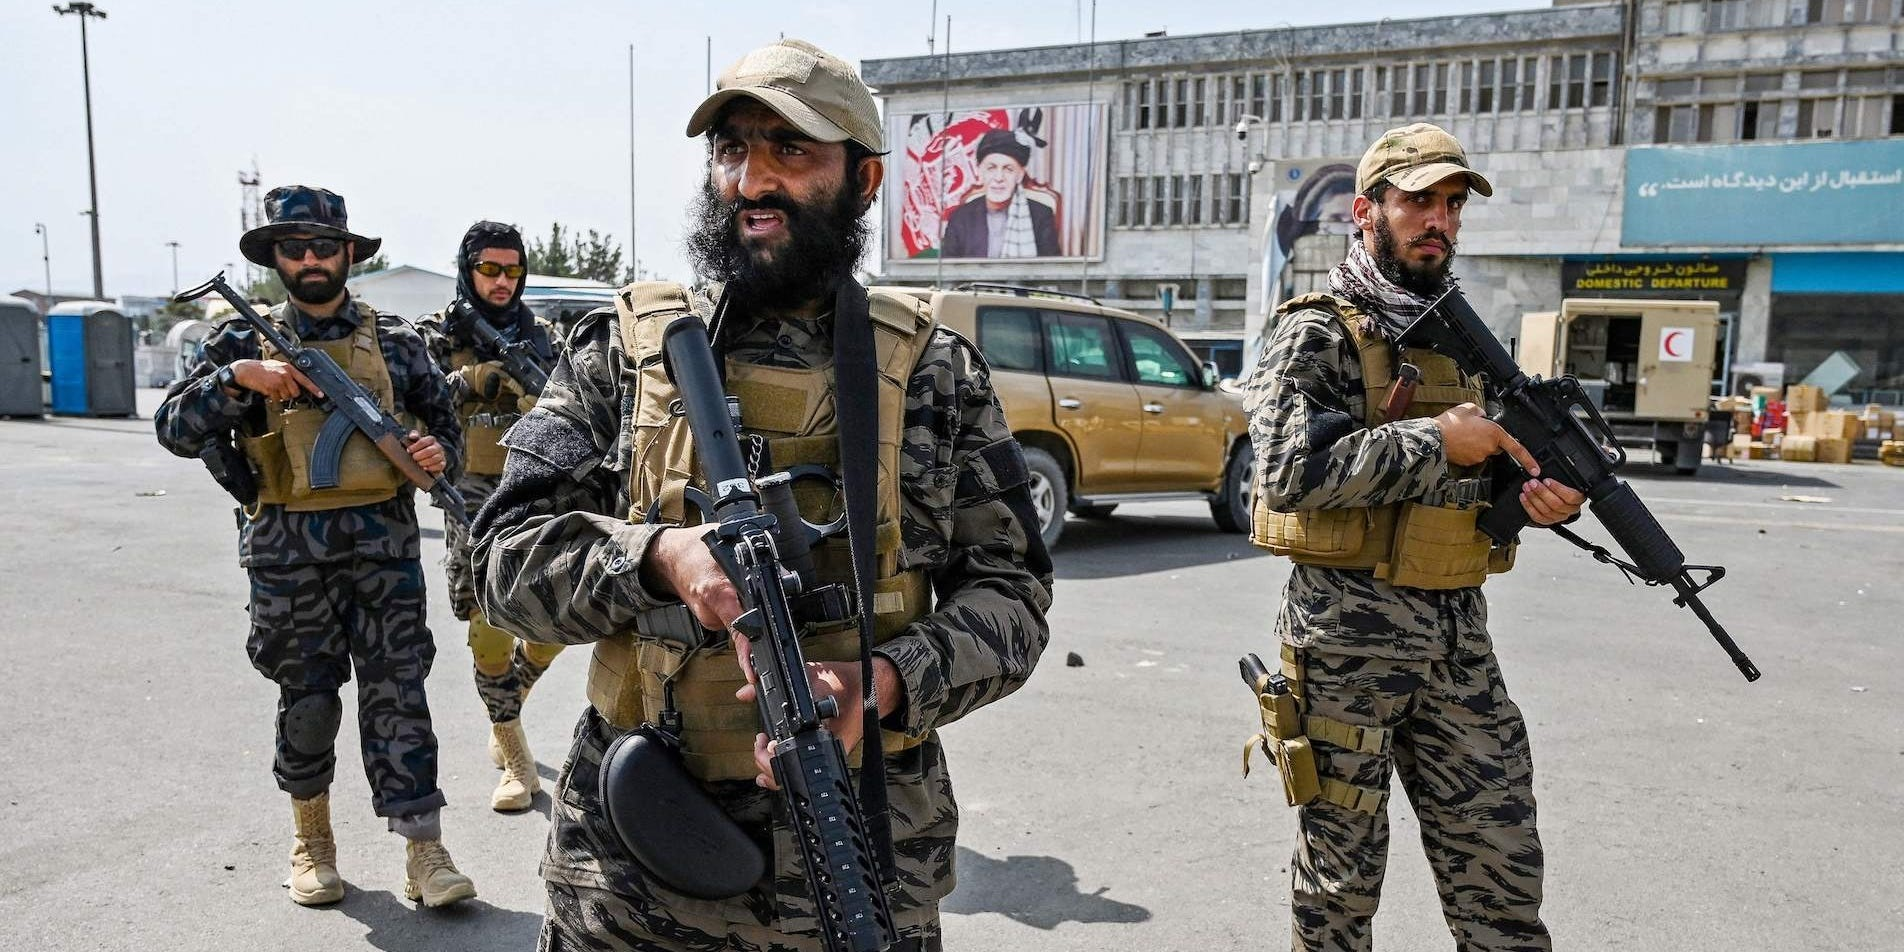 An explosion outside a mosque in the Afghan capital killed at least two people.